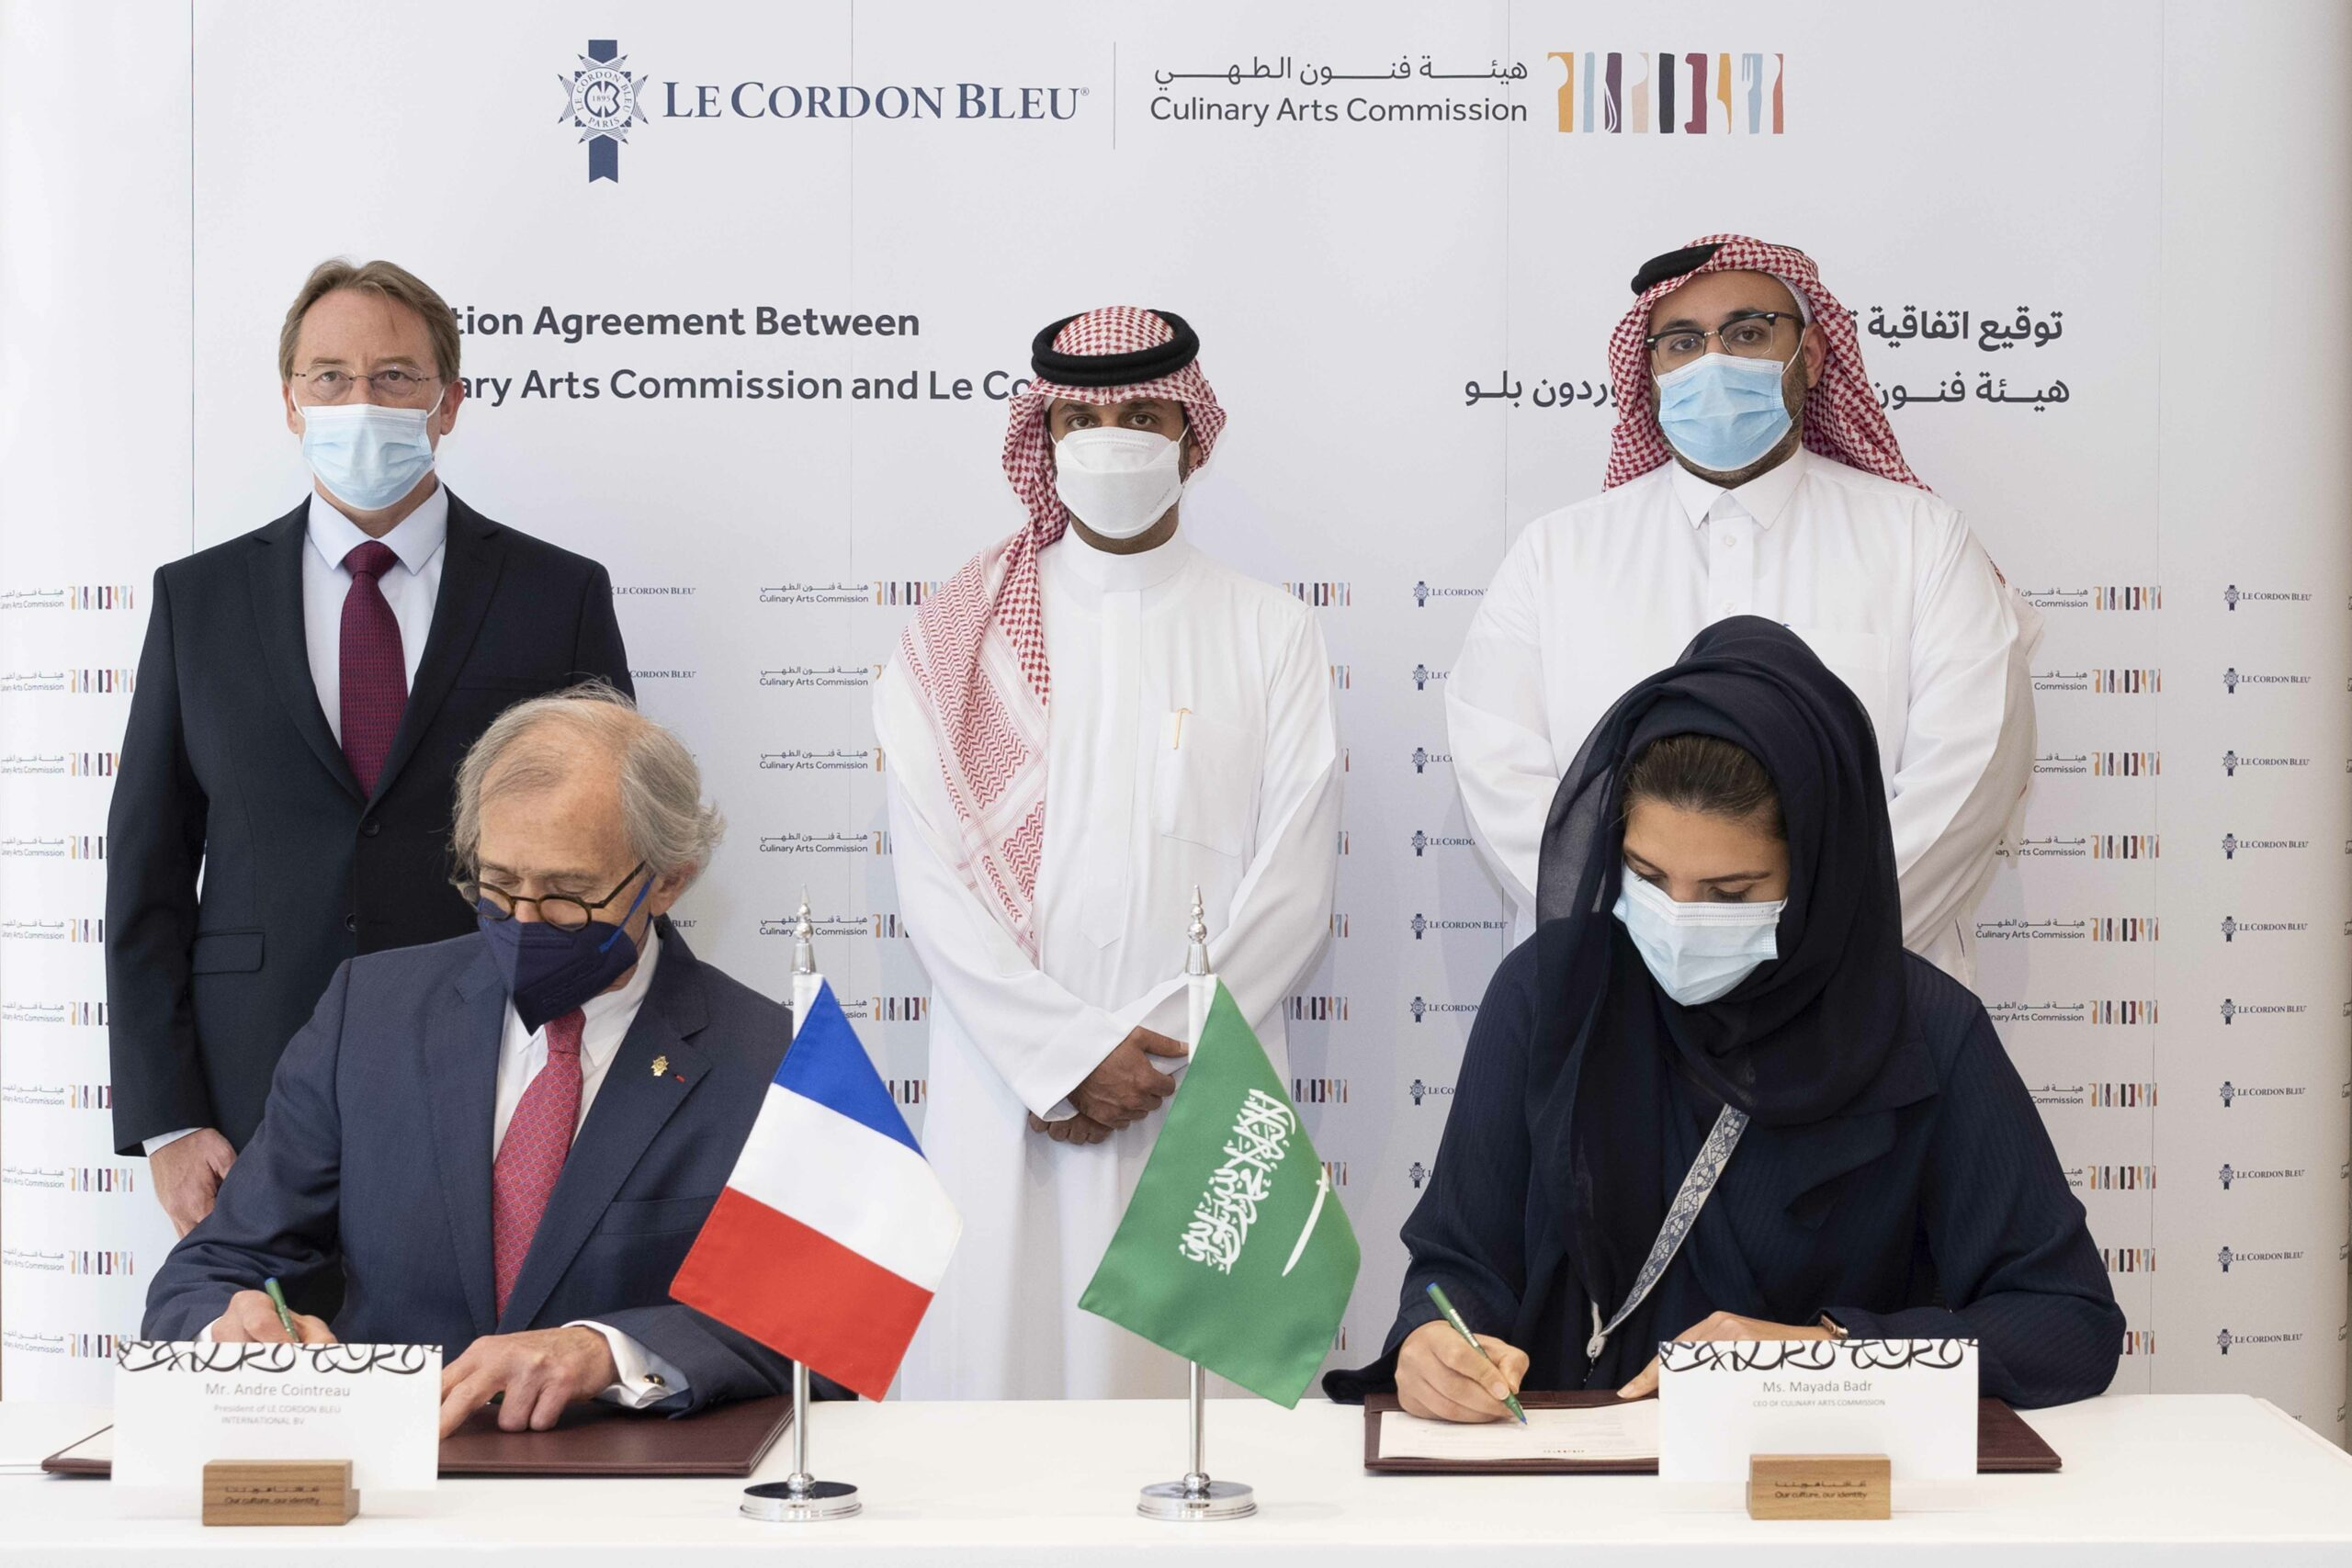 (L-R) Mr. Ludovic Pouille, Ambassador of the Republic of France to the Kingdom of Saudi Arabia; Mr. André Cointreau, President of Le Cordon Bleu; His Excellency Hamed Fayez, Deputy Minister of Culture, Vice Chairman of the Culinary Arts Commission; Ms. Mayada Badr, CEO of the Culinary Arts Commission; and His Excellency Rakan Al Touq, General Supervisor of Cultural Affairs and International Relations.